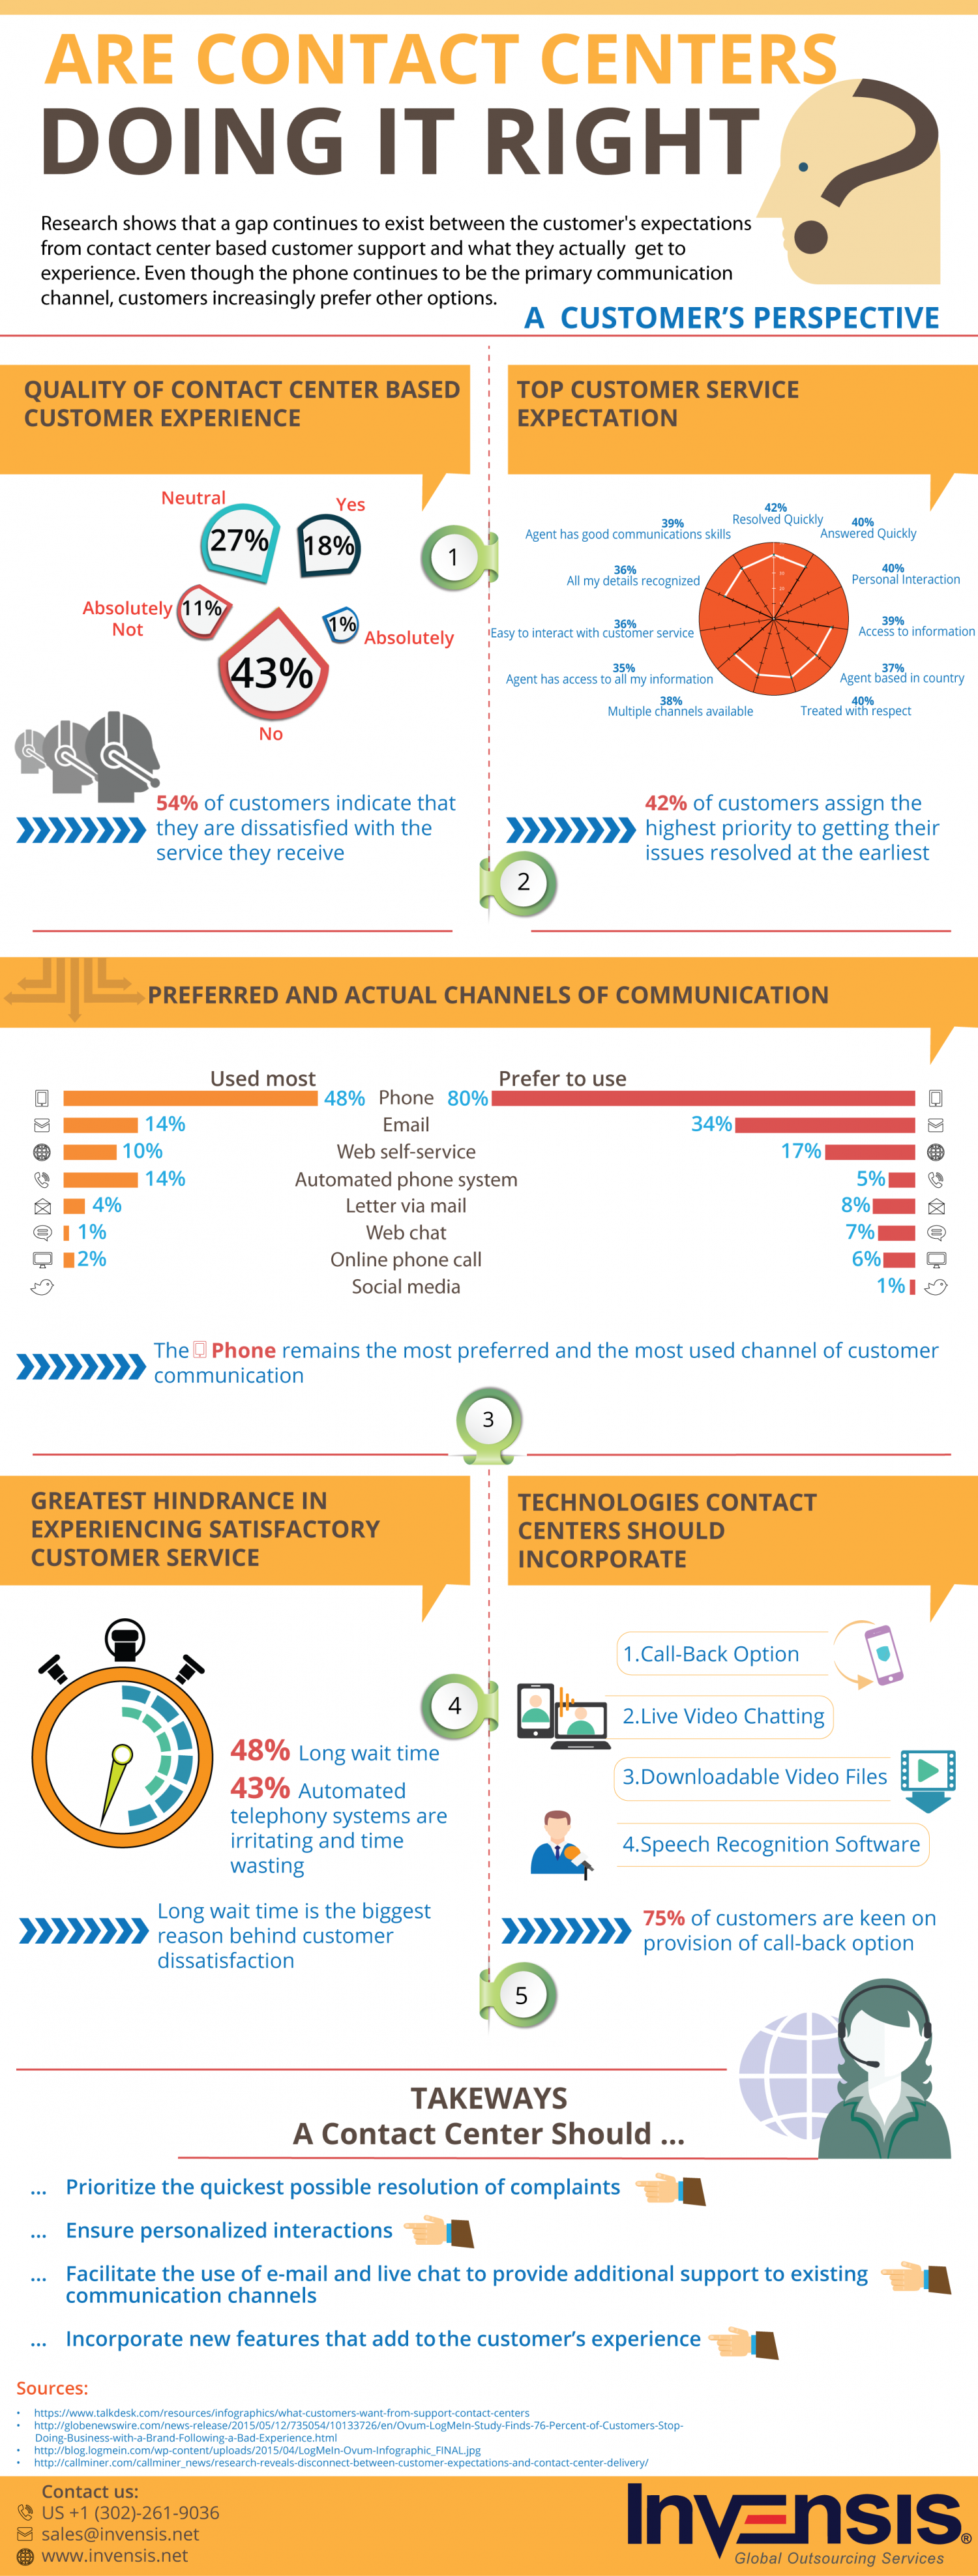 Are Contact Centers Doing it Right? – Customers' Perspective Infographic